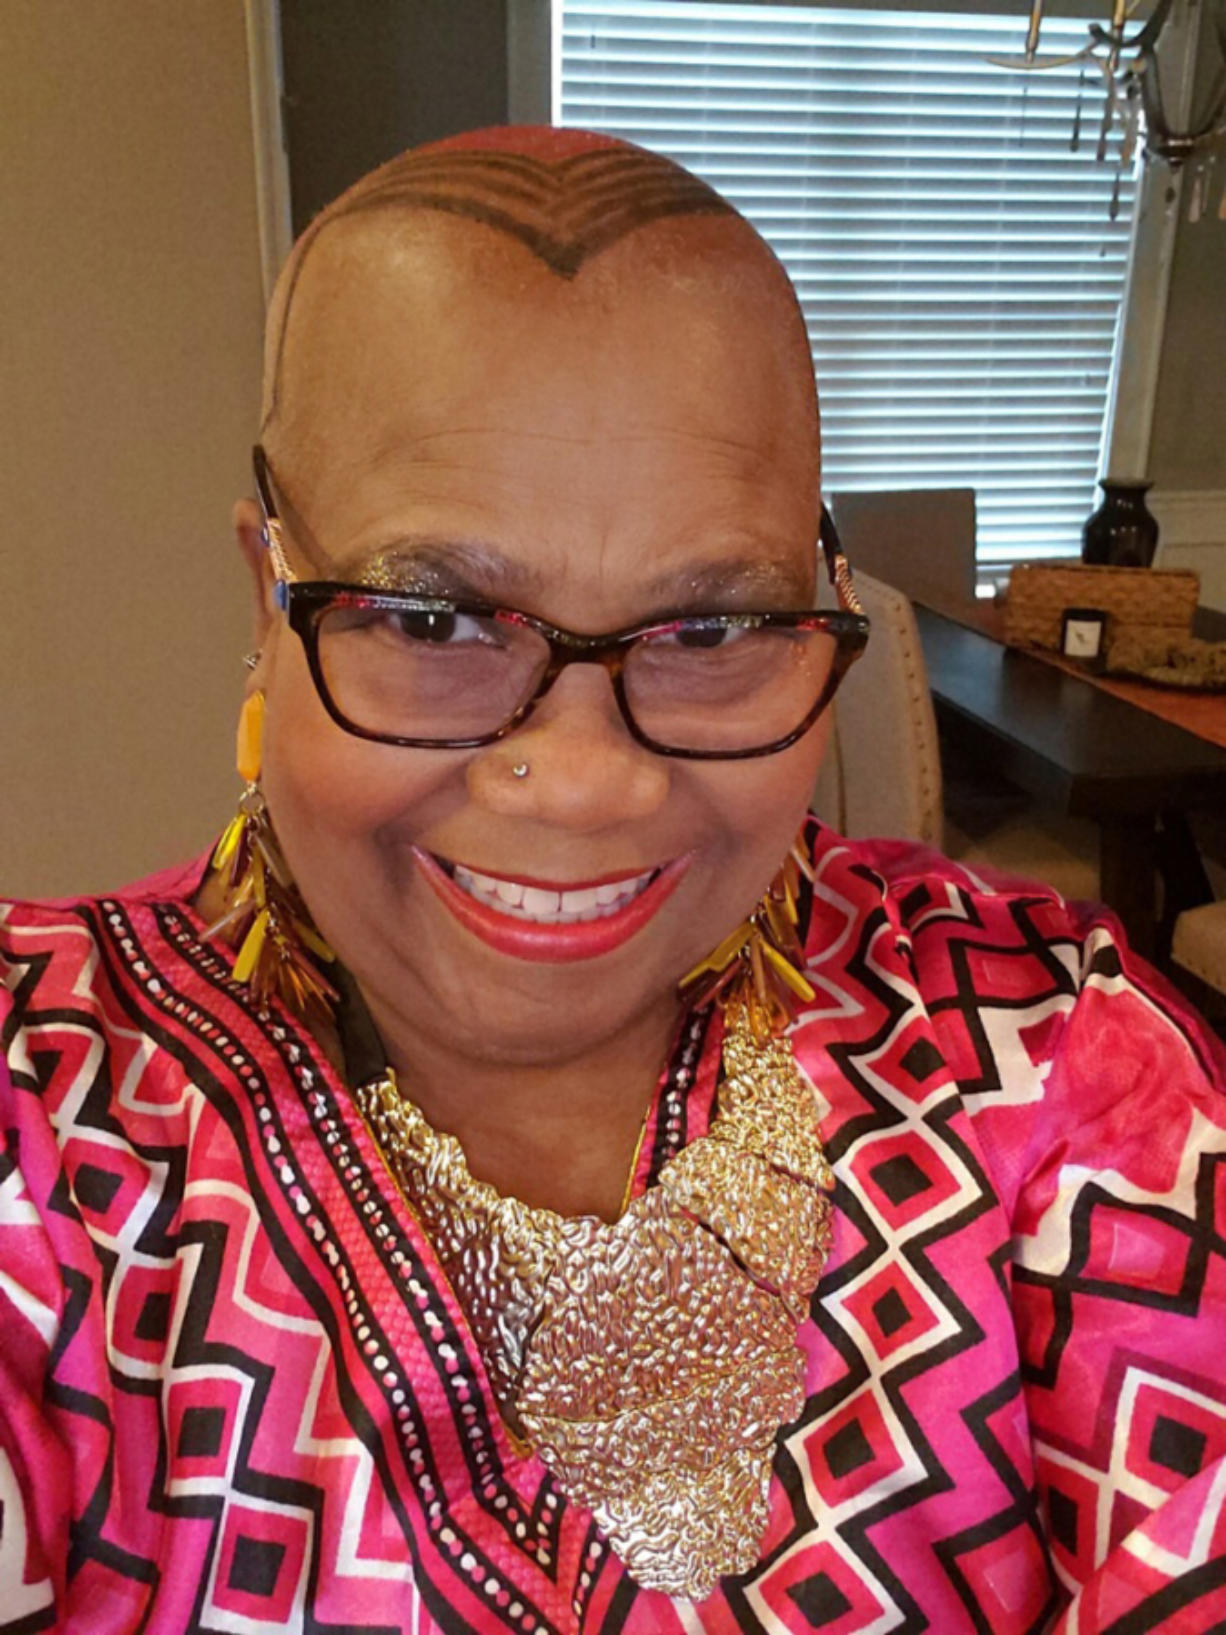 Sharon Clark's cancer drug, Pomalyst, costs her $18,000 for a 28-day supply. Patient assistance foundations provide financial aid, but to benefit she must be fortunate enough to catch the window for securing the limited funds available.